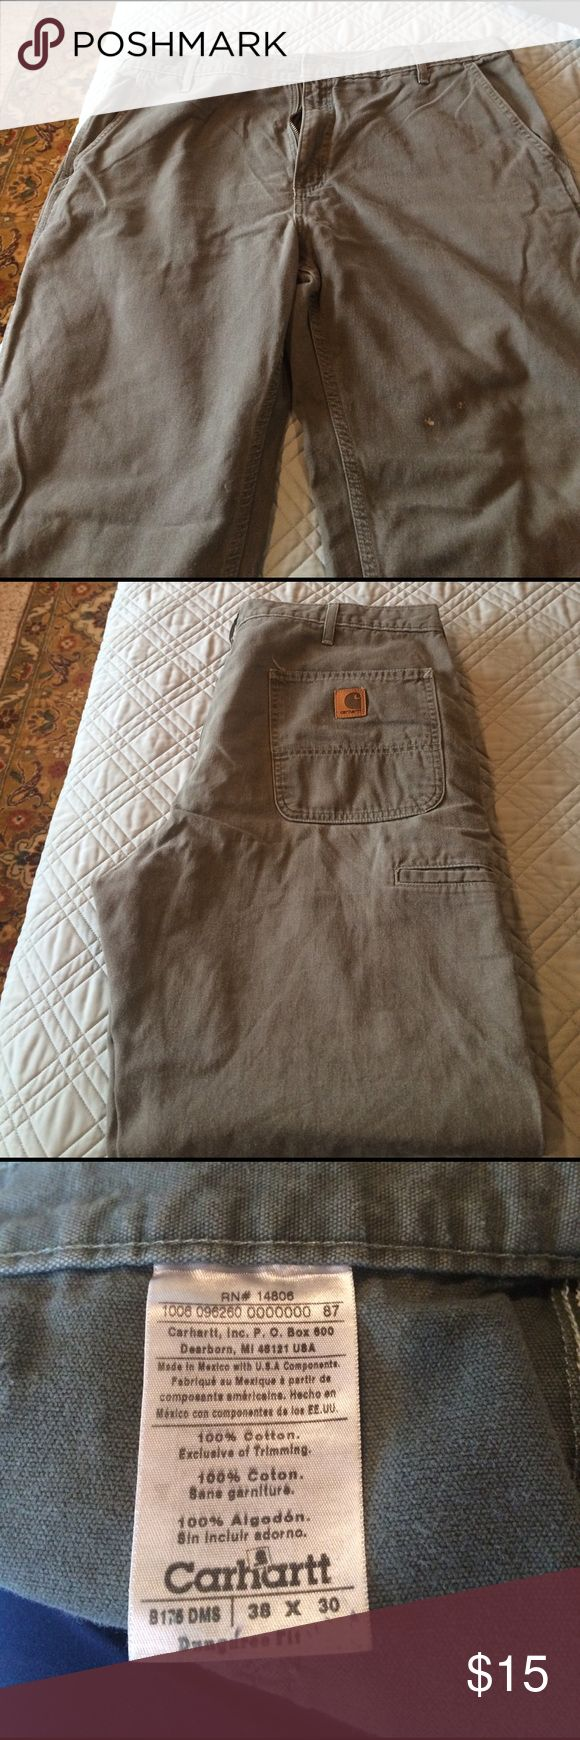 Men's Carhartt Pants Great condition.  38x30.  They just don't fit him ; ).  Two small white spots on front leg.  See first pic.  These are really heavy duty pants for outdoor activities.  Color is hard to explain. Kinda light light army green. Carhartt Pants